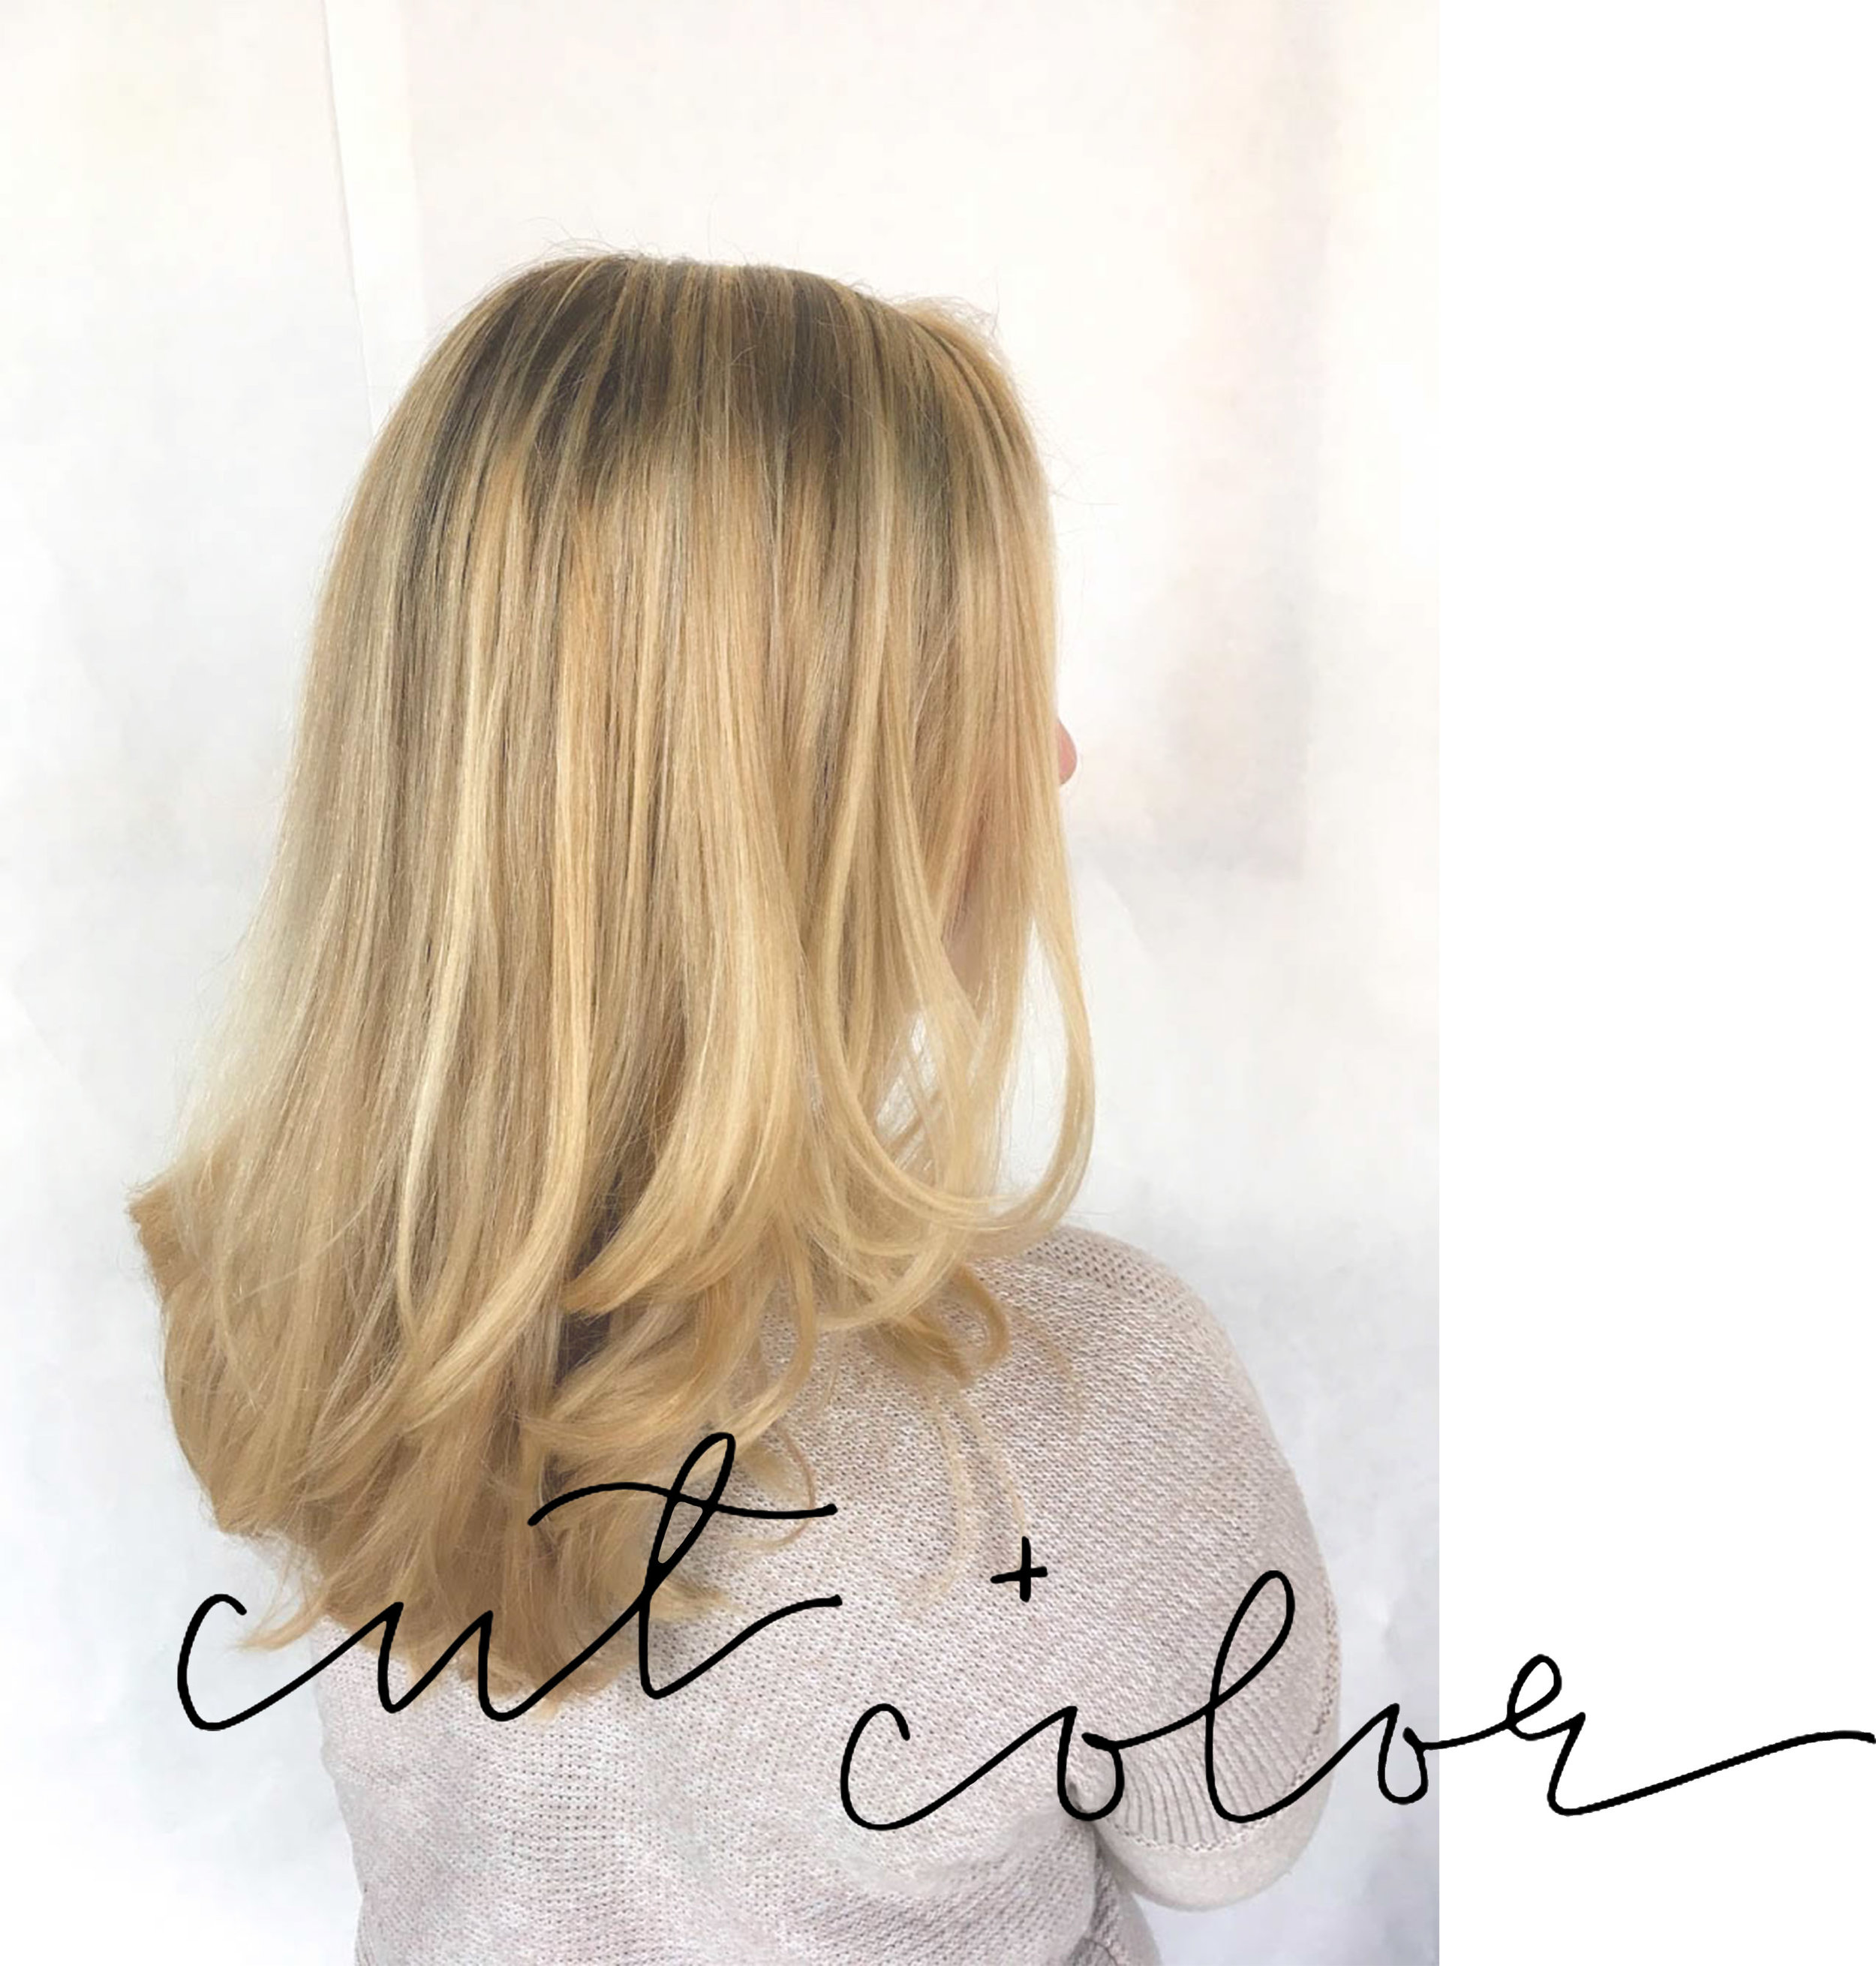 cut and color stock image.jpg